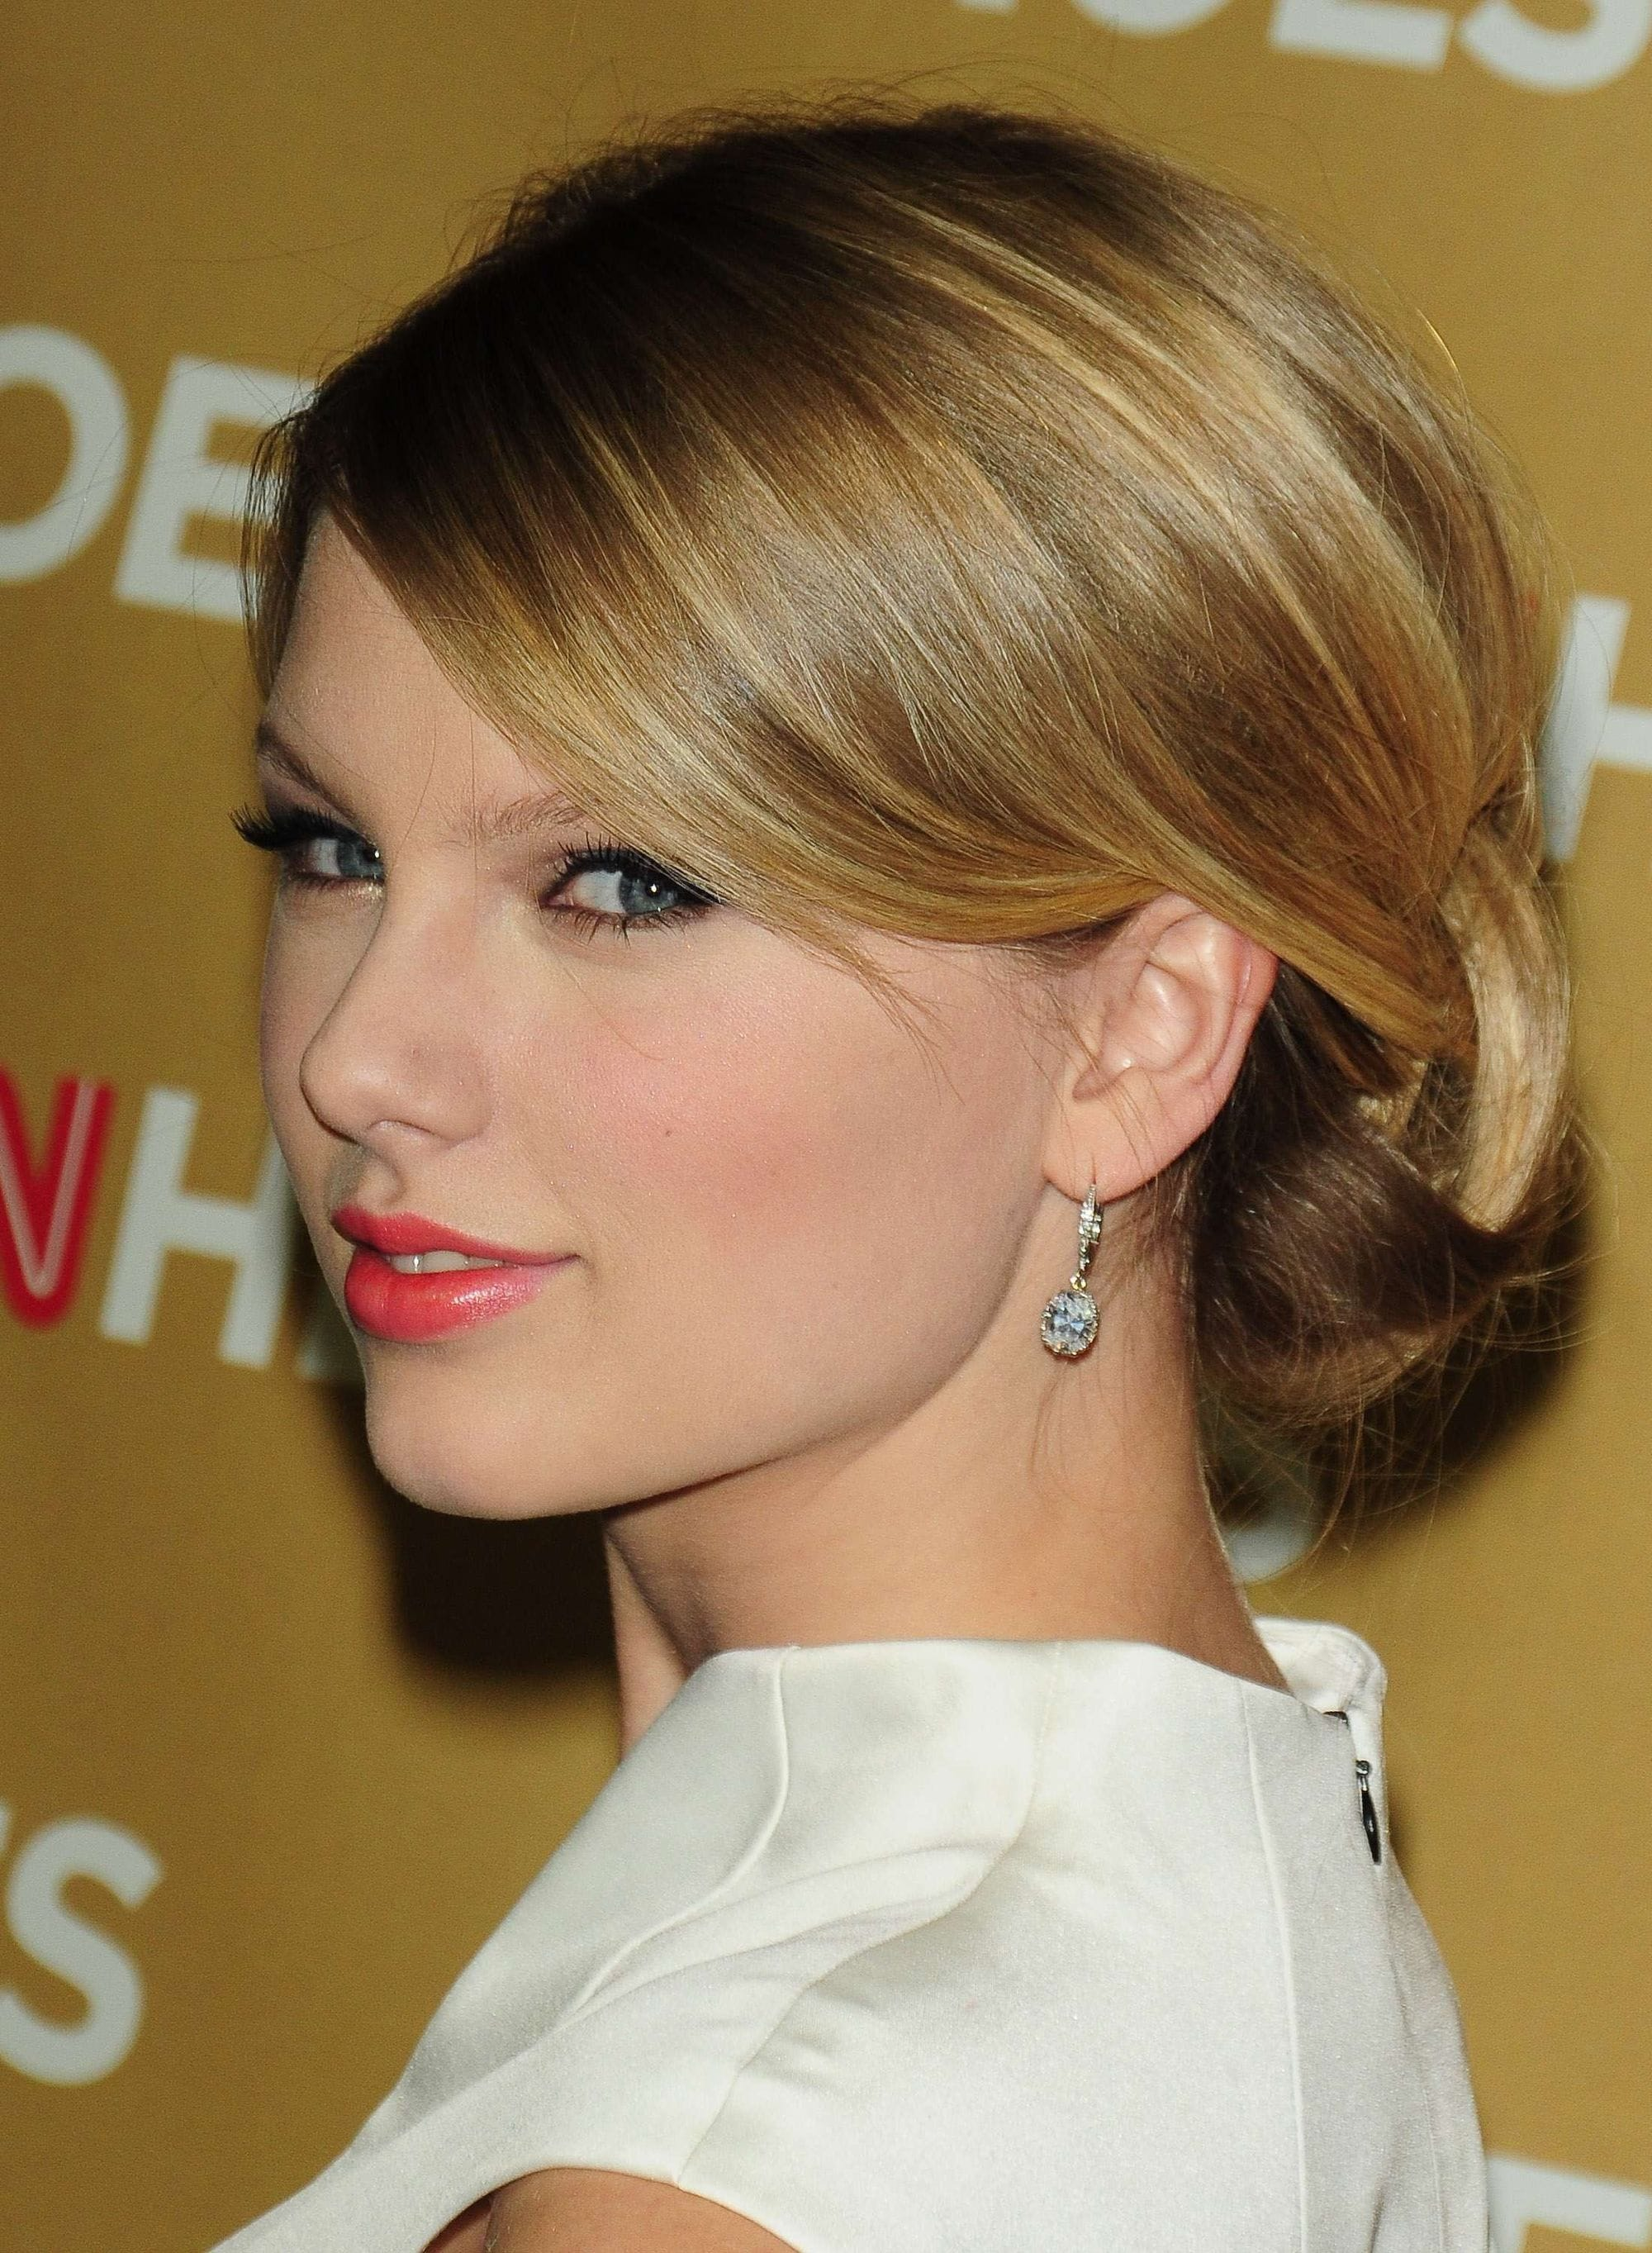 singer taylor swift in 2008 with a sleek updo hairstyle